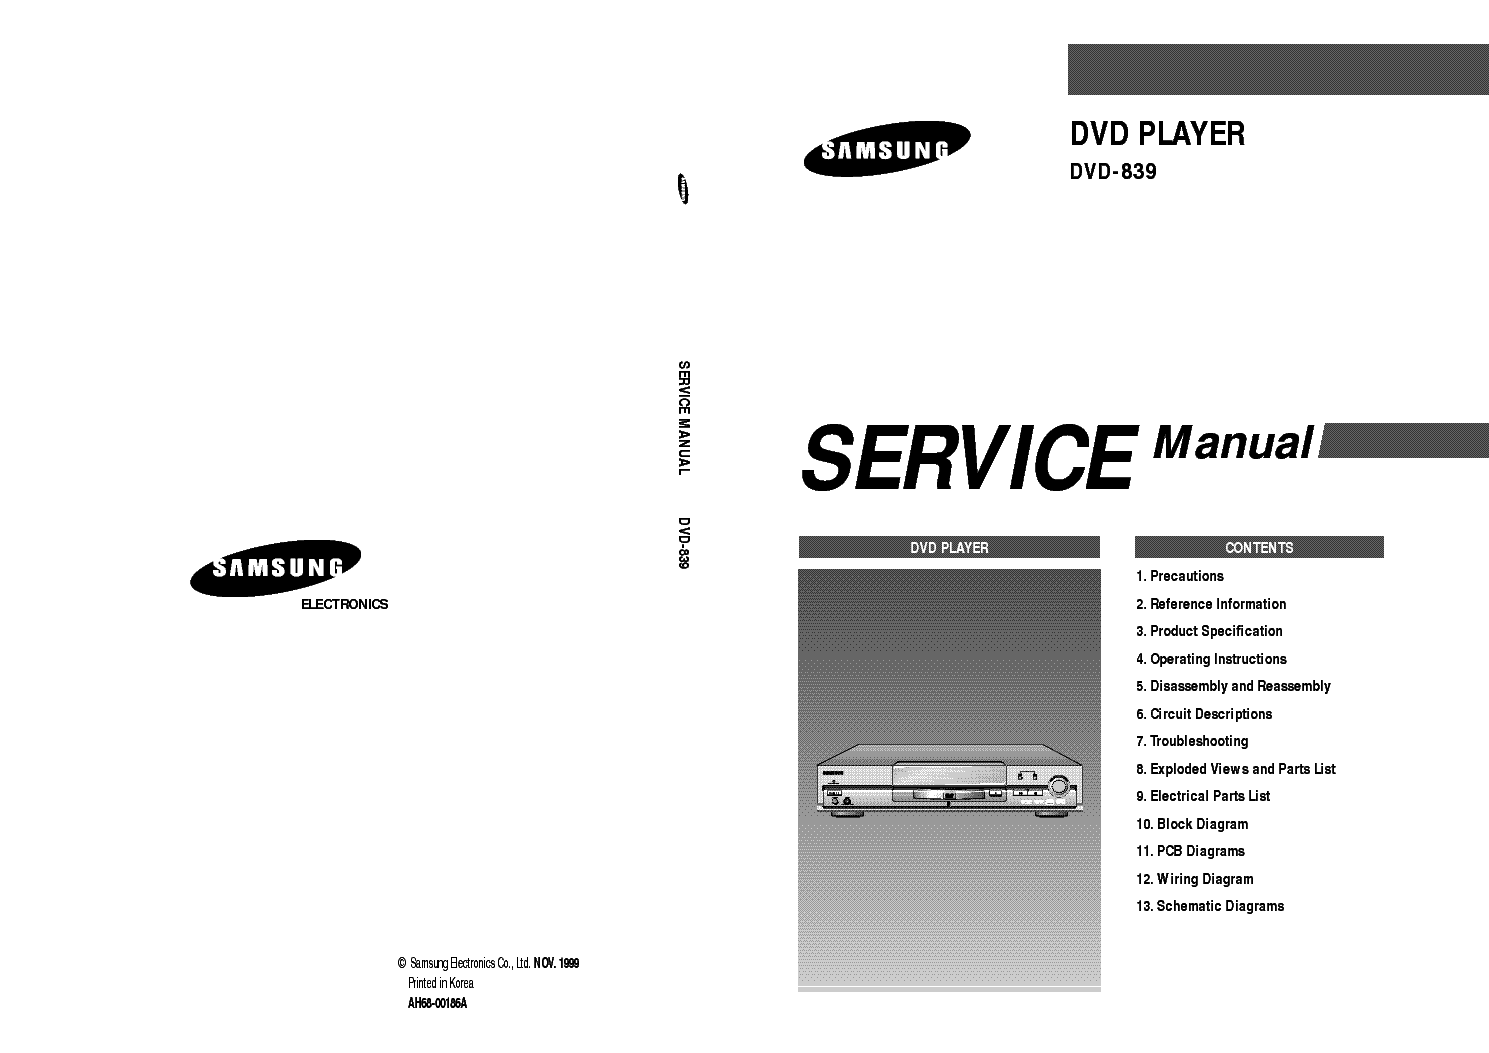 SAMSUNG DVD-839 service manual (1st page)